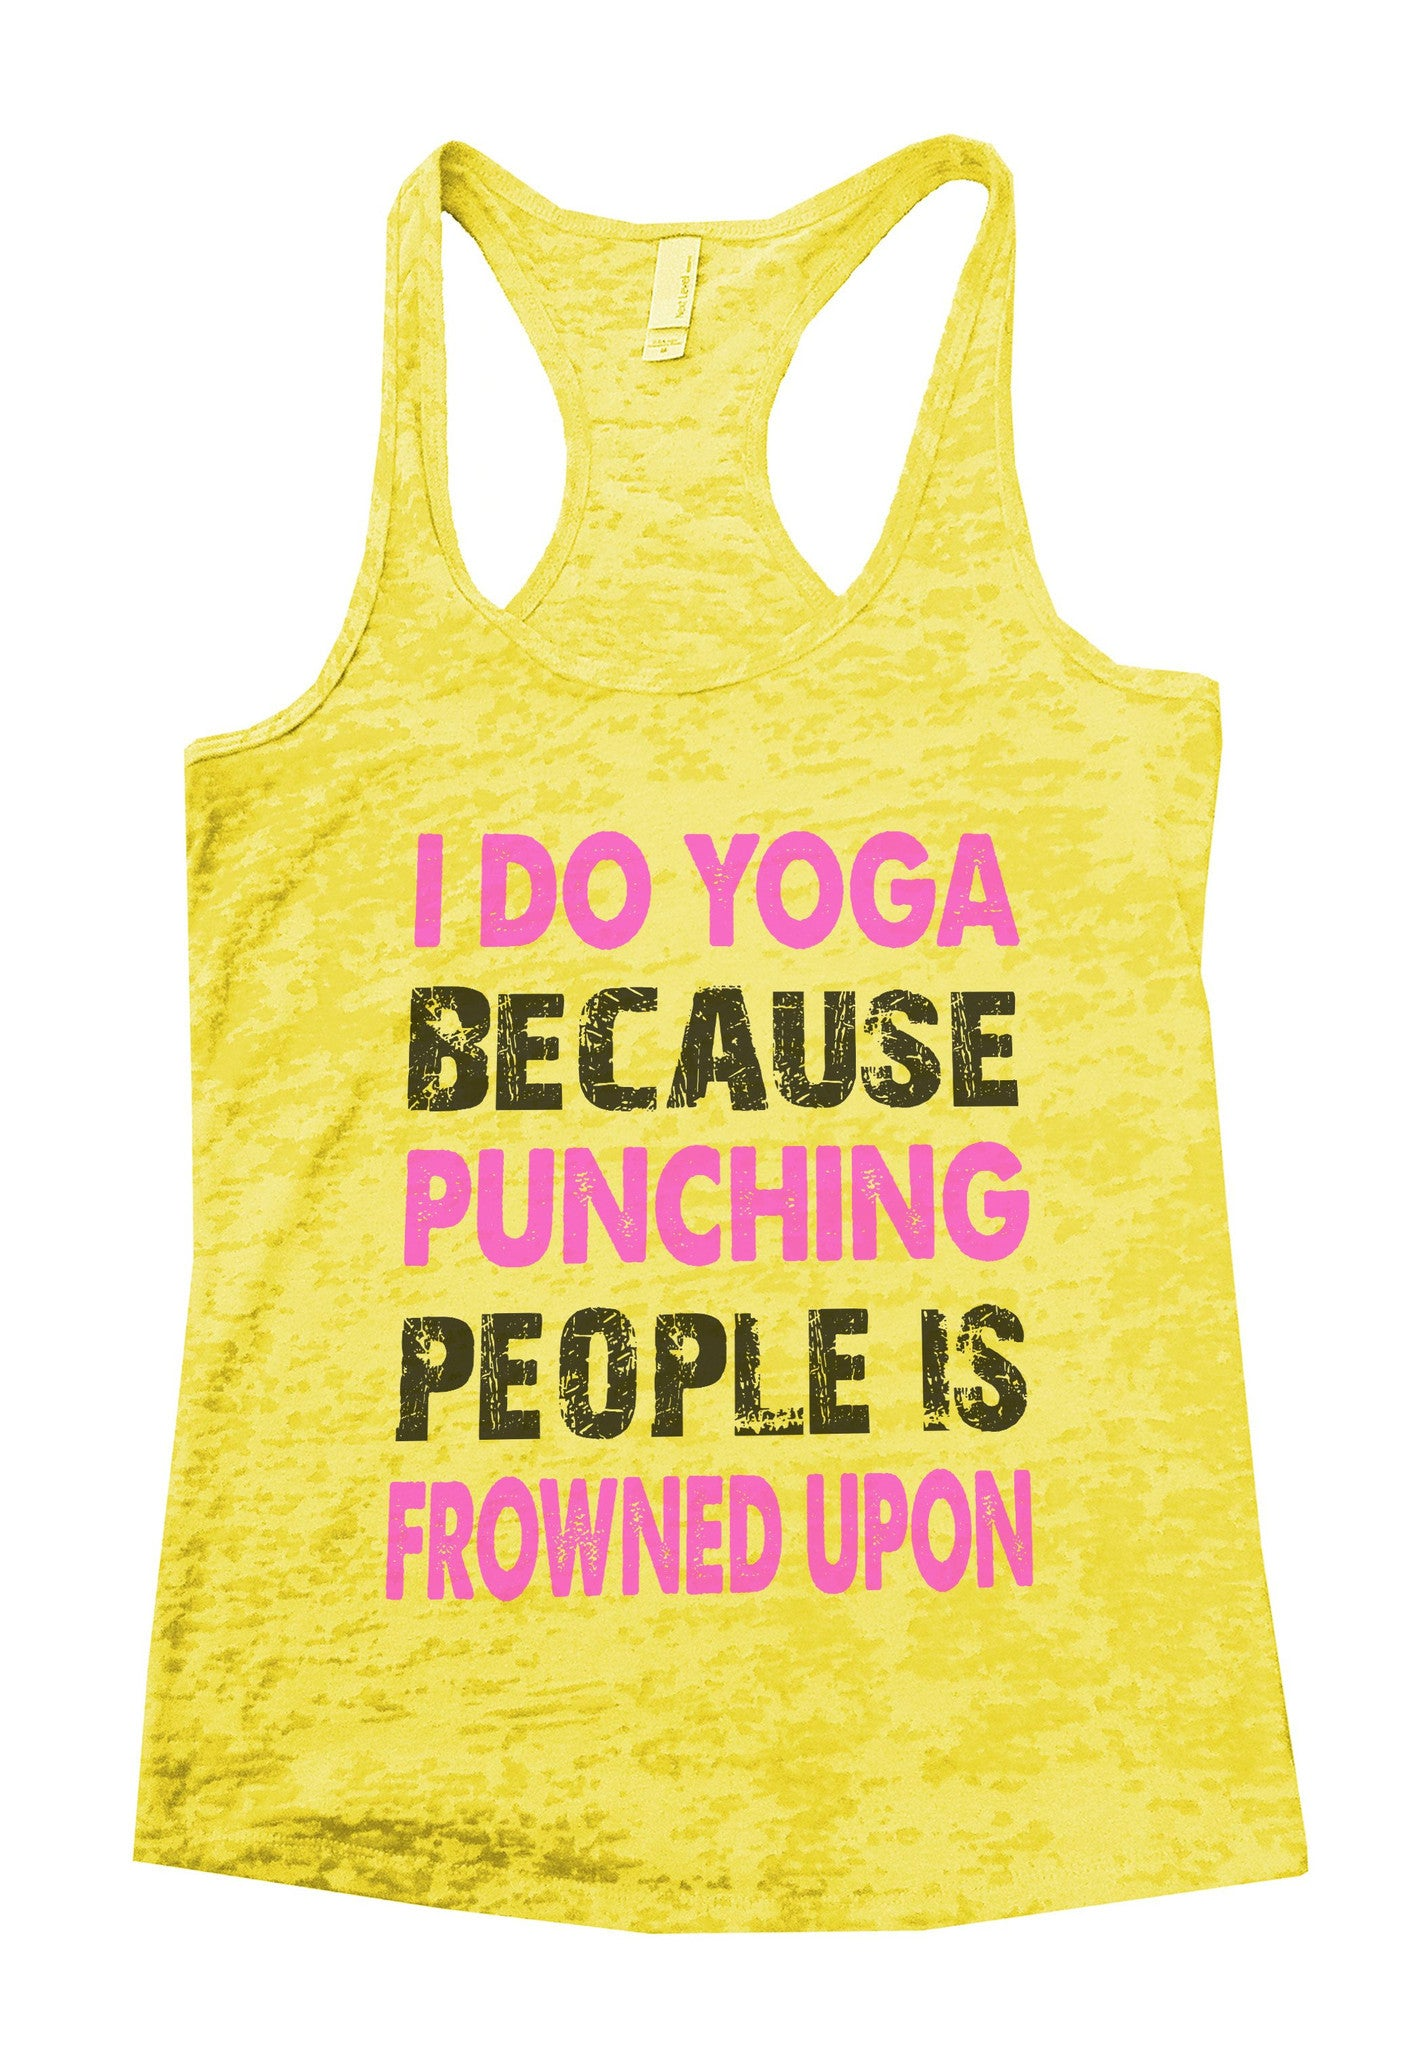 I Do Yoga Because Punching People Is Frowned Upon Burnout Tank Top By BurnoutTankTops.com - 710 - Funny Shirts Tank Tops Burnouts and Triblends  - 4